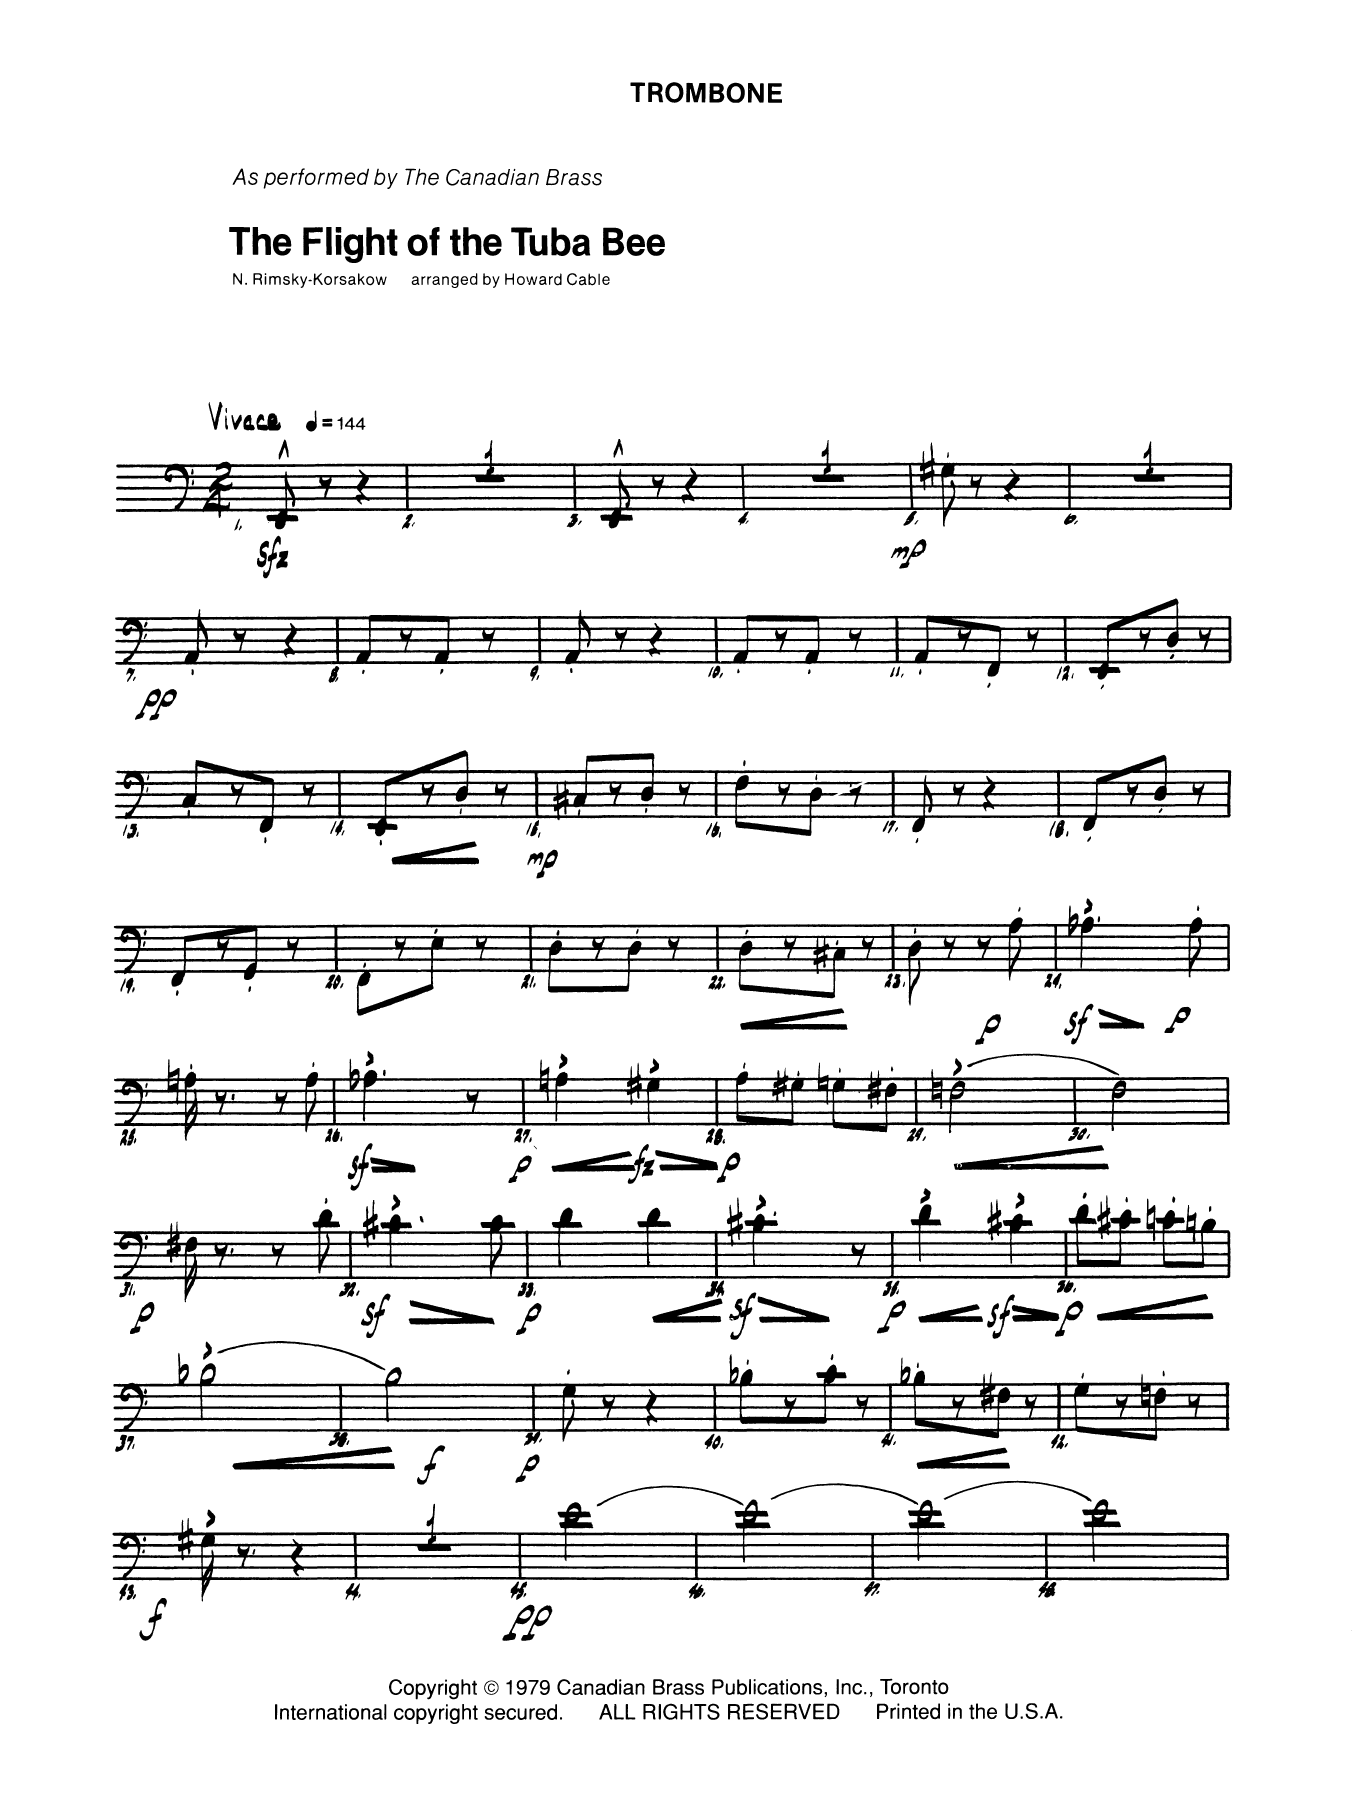 The Flight of the Tuba Bee - Trombone (B.C.) Partituras Digitales